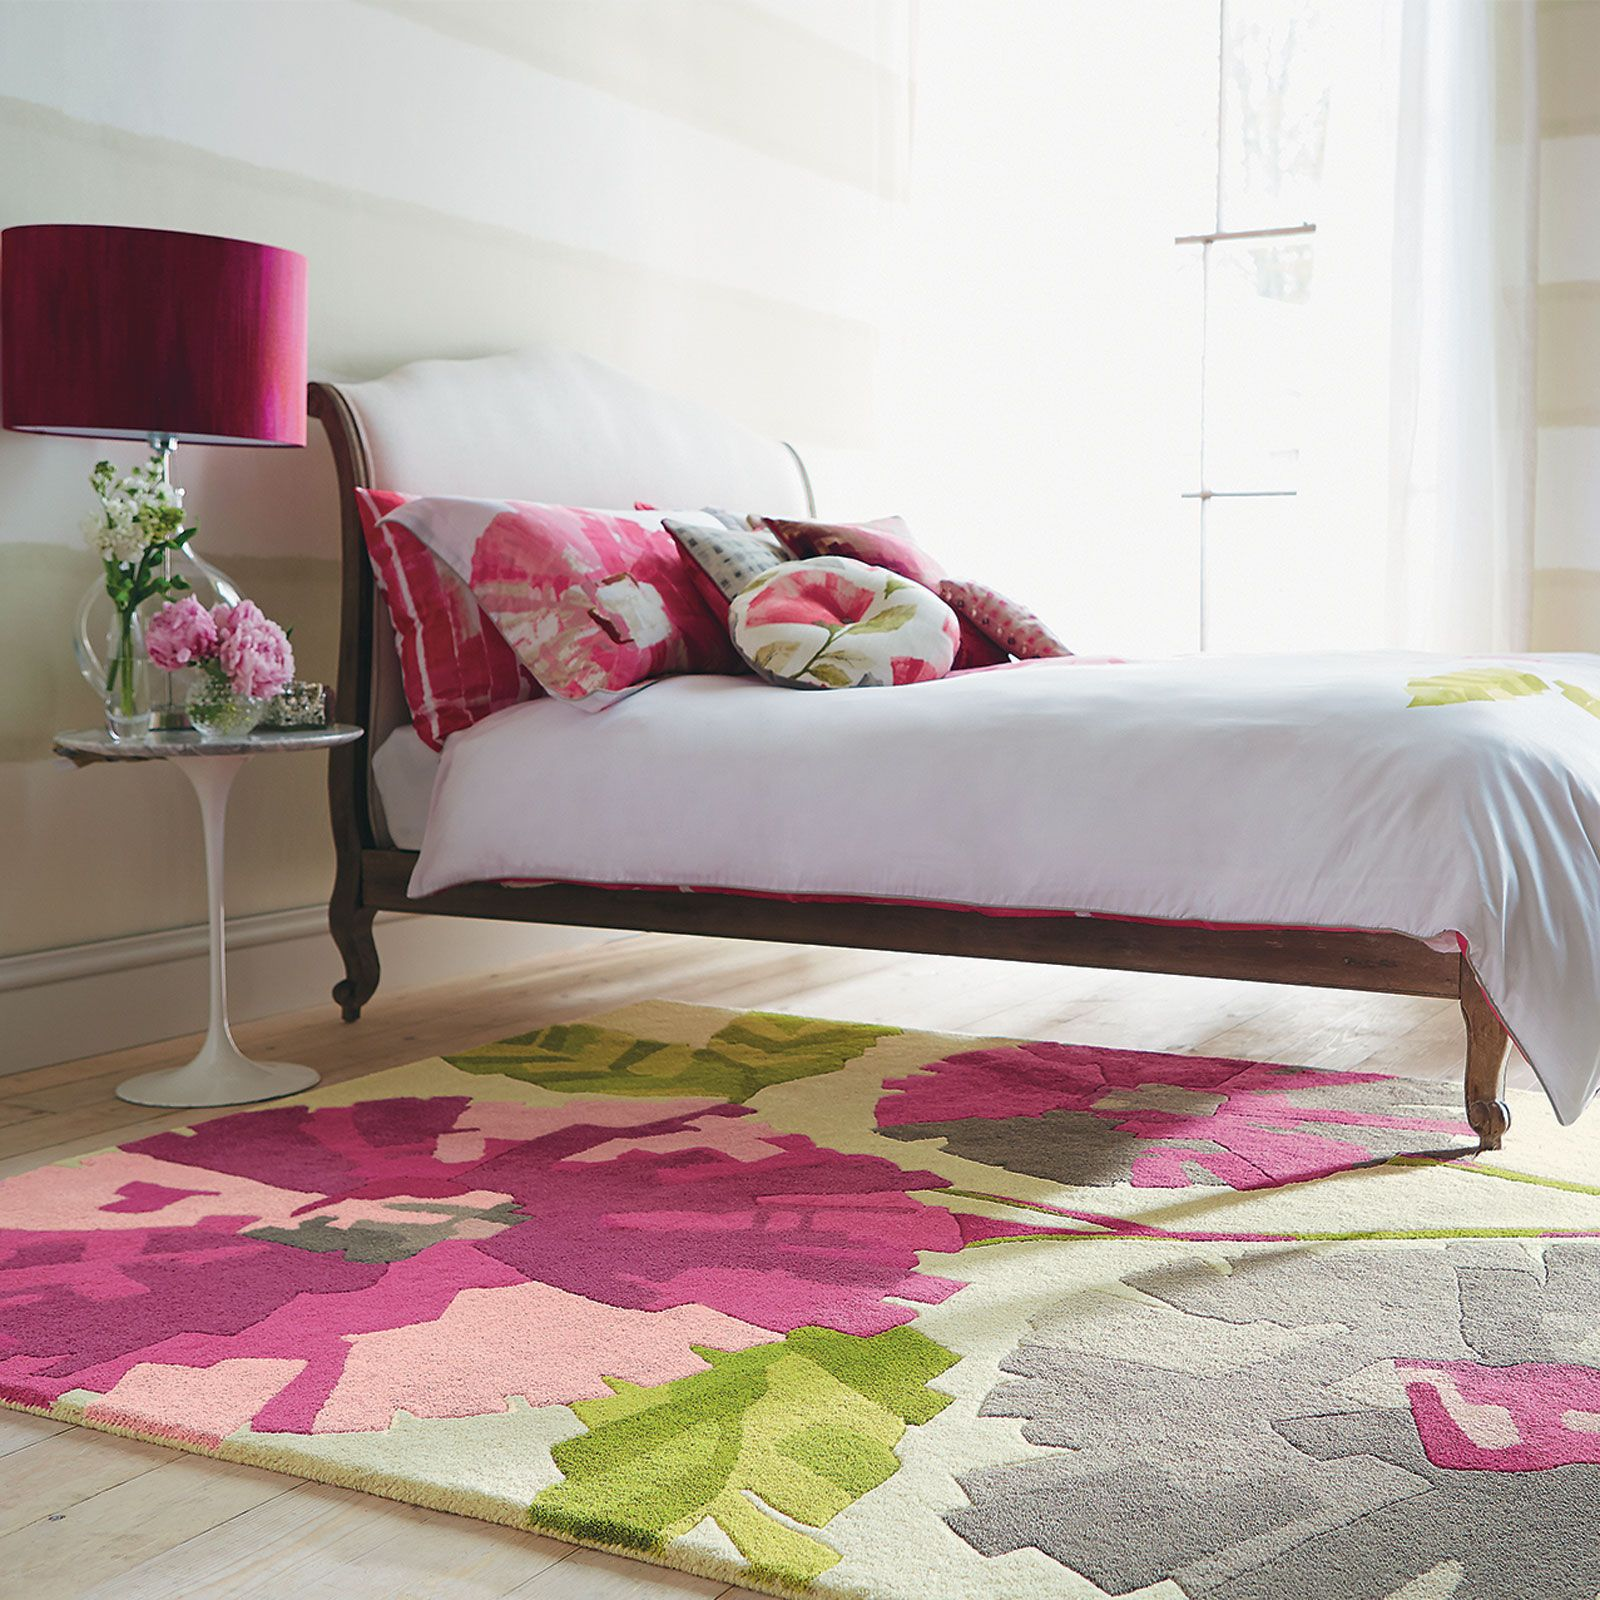 Girly Rugs For Bedroom: A Girly Pink Bedroom Accompanied By A Floral Rug And